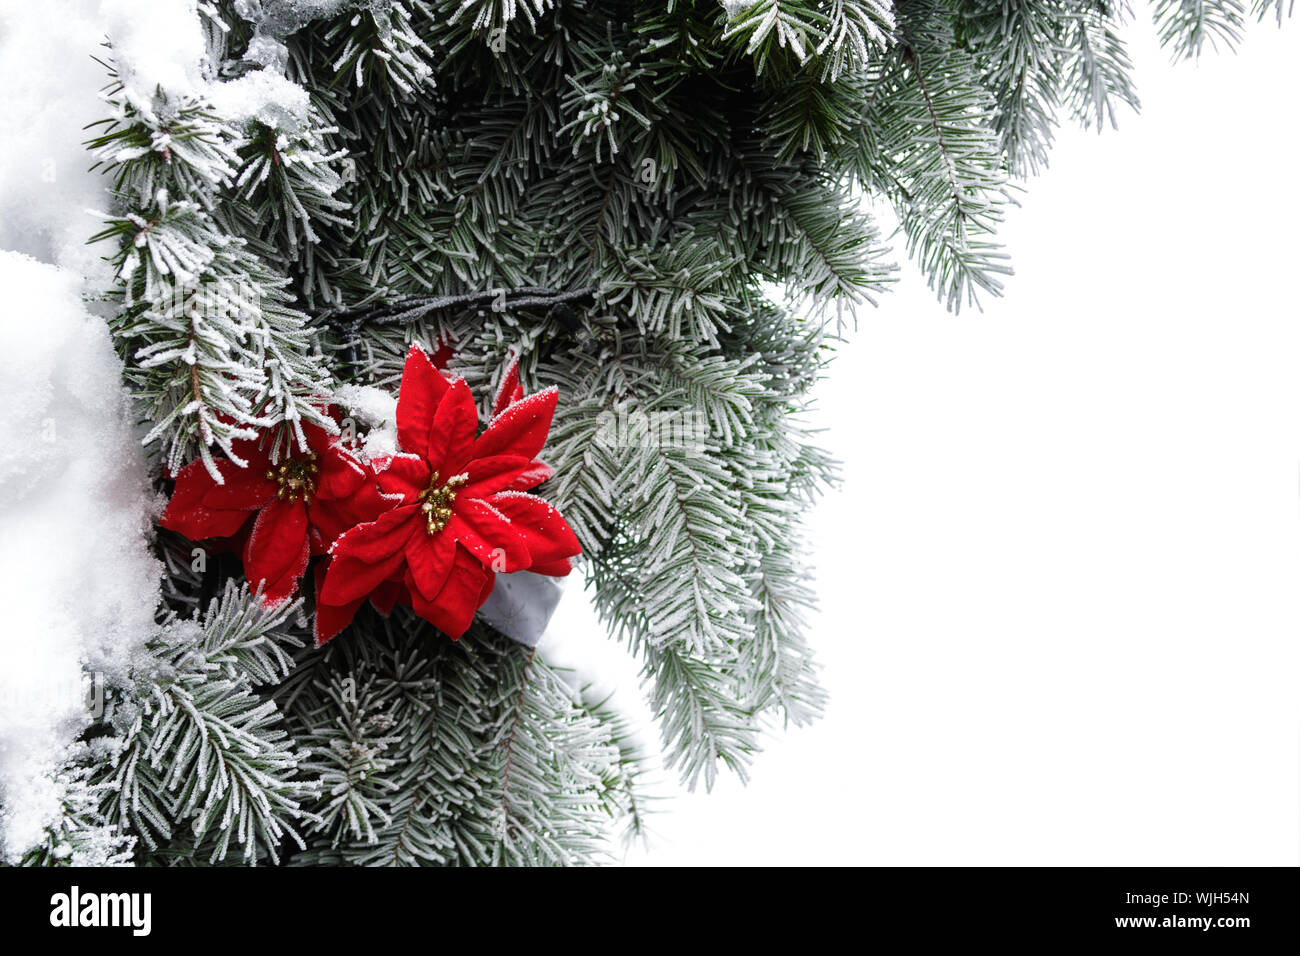 Frozen Christmas Decorations.Christmas Decorations Red Flower And Frozen Fir Stock Photo